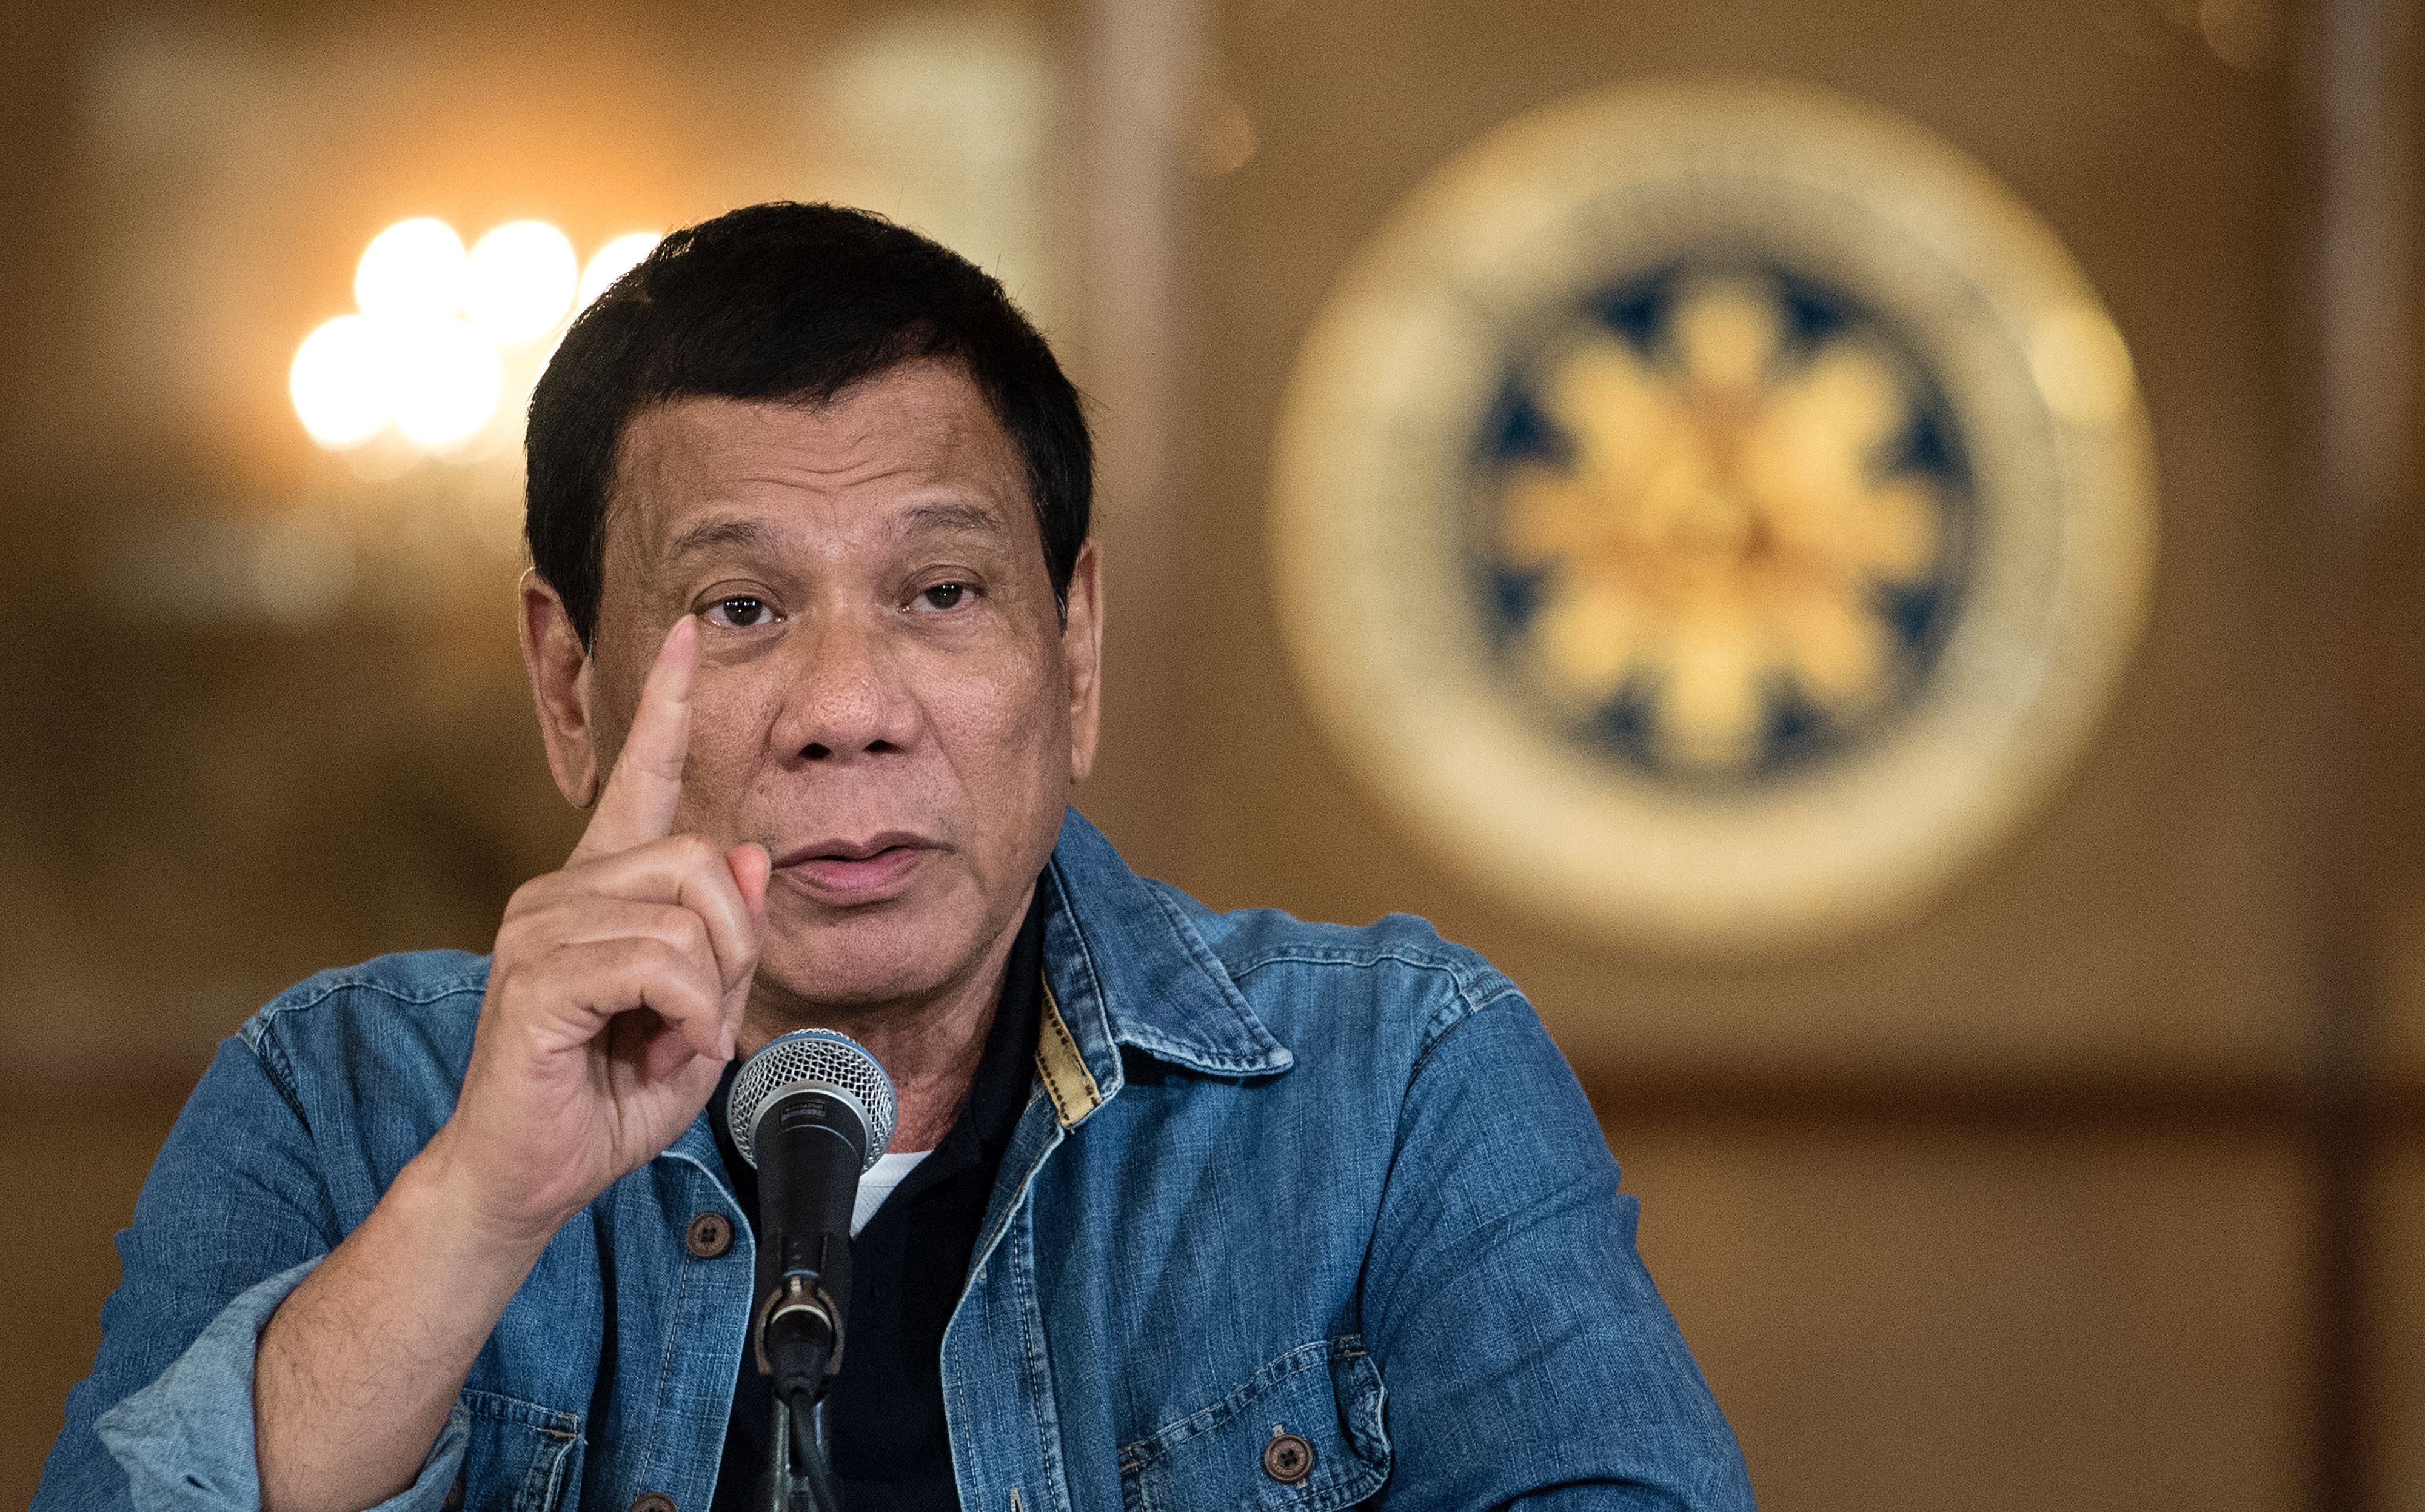 Philippine's President Rodrigo Duterte gestures as he answers a question during a press conference at the Malacanang palace in Manila on January 30, 2017.